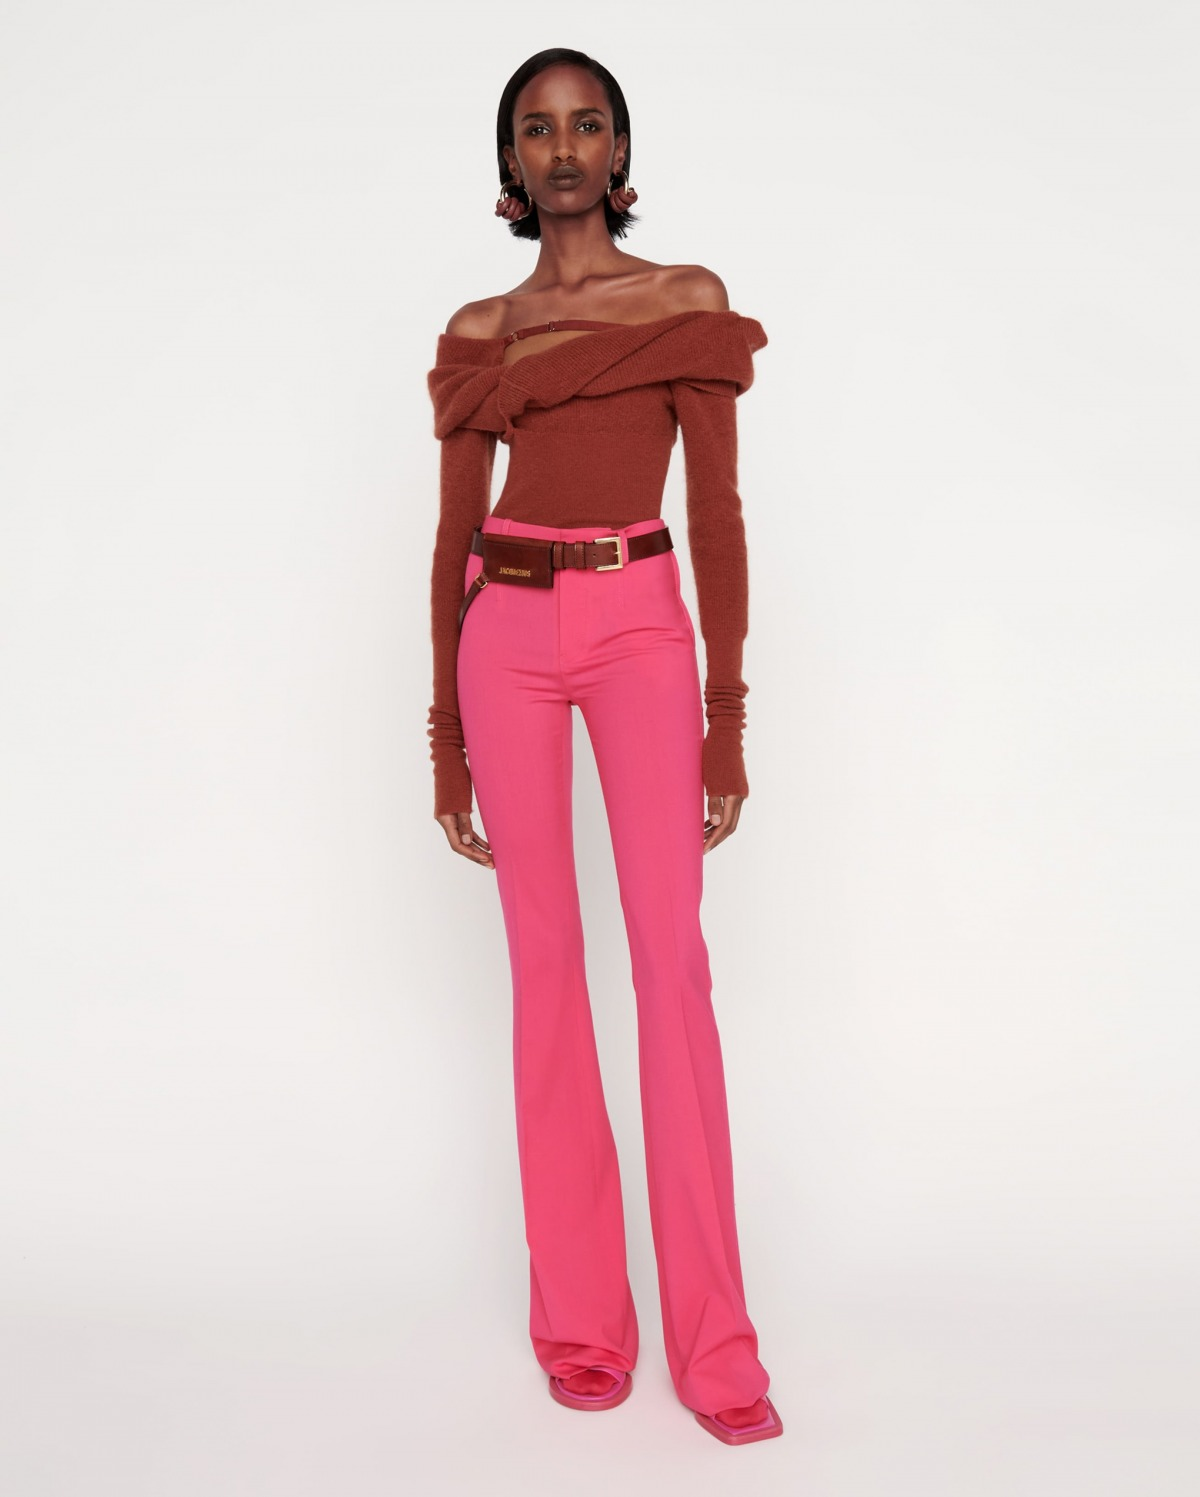 Le pantalon Pinu by Jacquemus, available on jacquemus.com for $500 Kendall Jenner Pants Exact Product